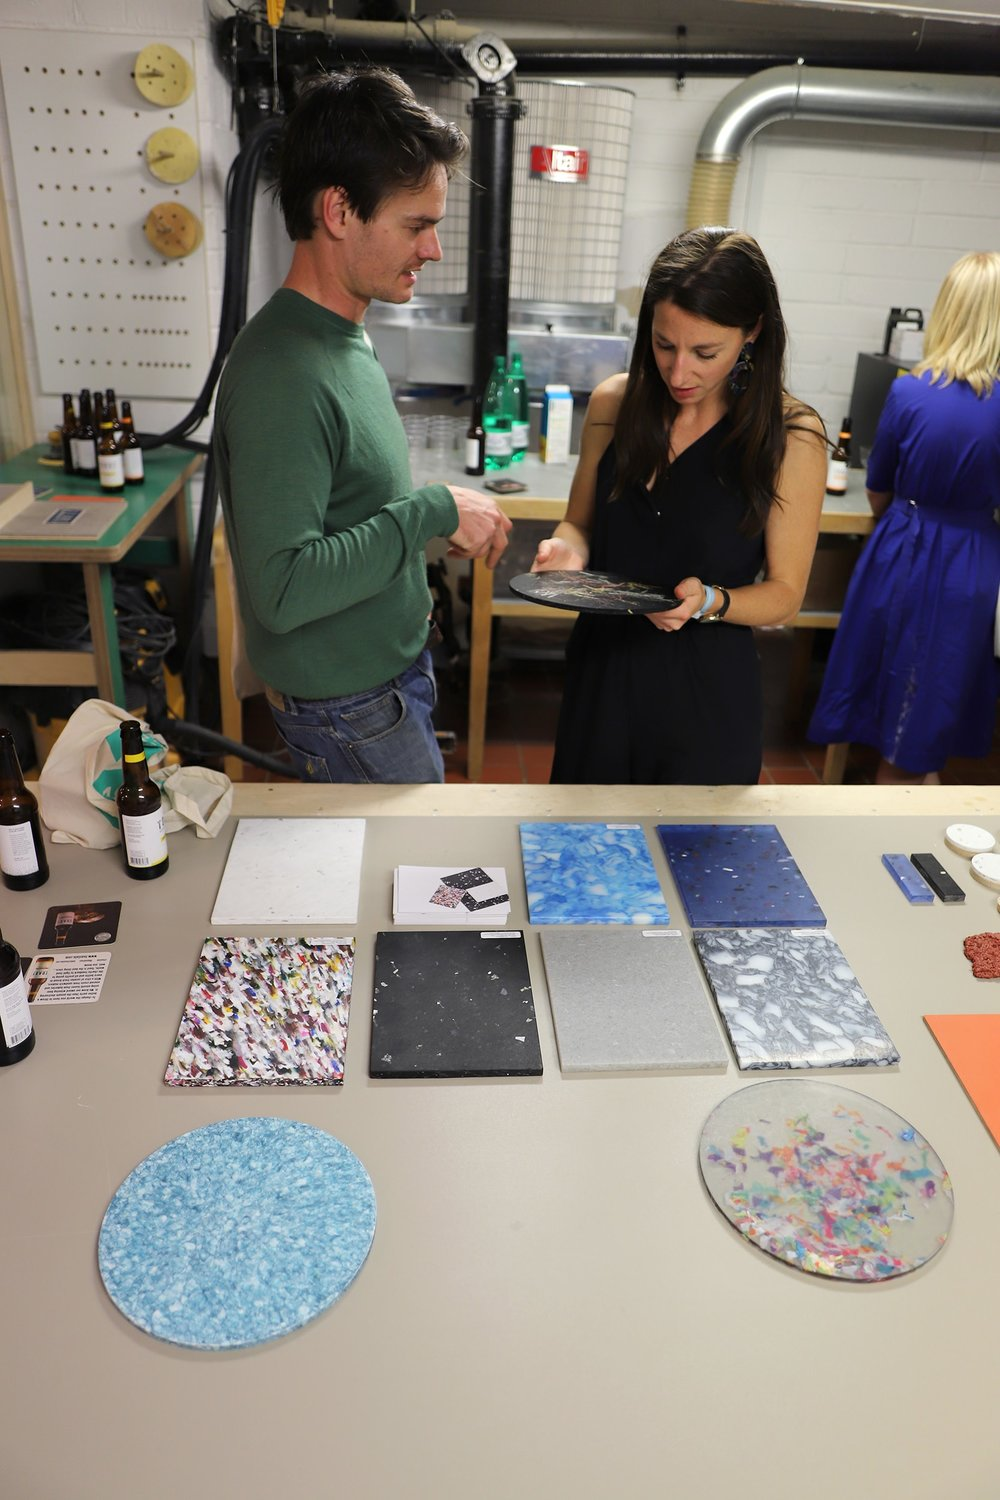 Adam from Smile Plastics talking Helen through his material samples.